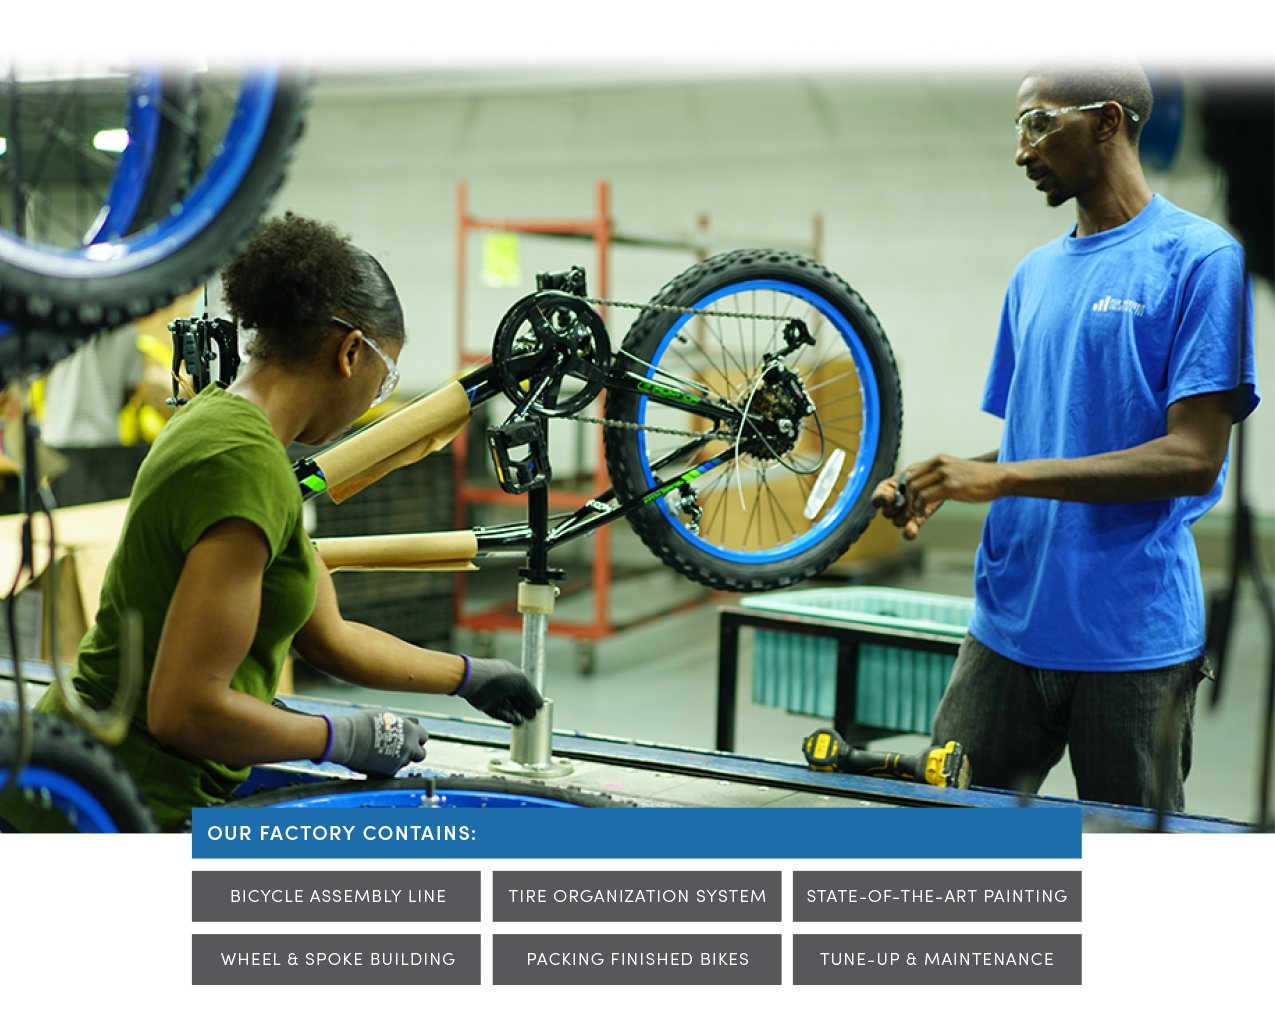 Two BCA workers on the assembly line, building the same bicycle. Our Factory Contains: Bicycle Assembly Line, Tire Organization System, State-of-the-art painting, Wheel & spoke building, packing finished bikes, and tune-up & maintenance.